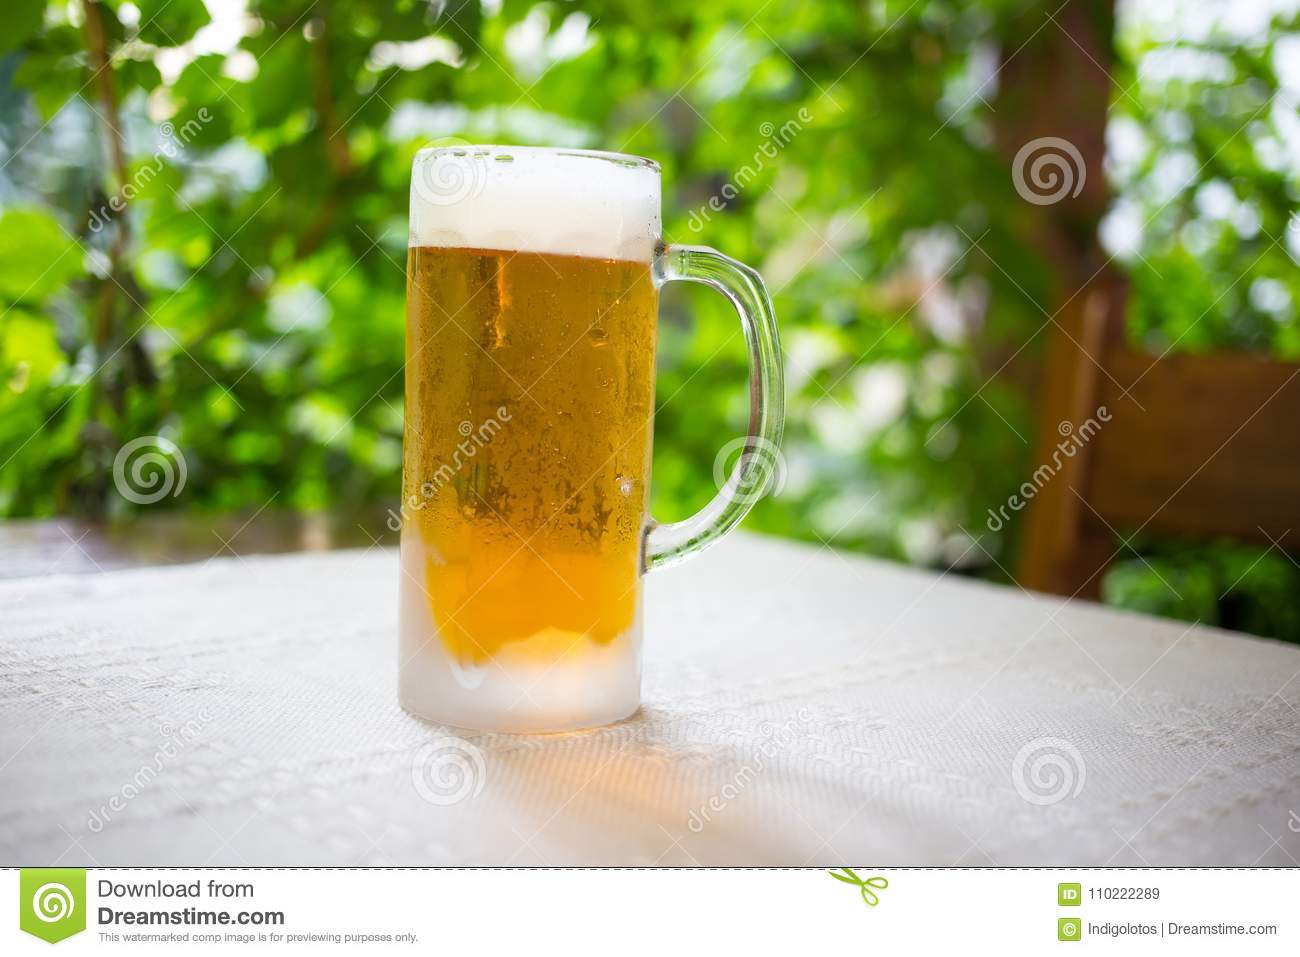 Glass with fresh lager beer.